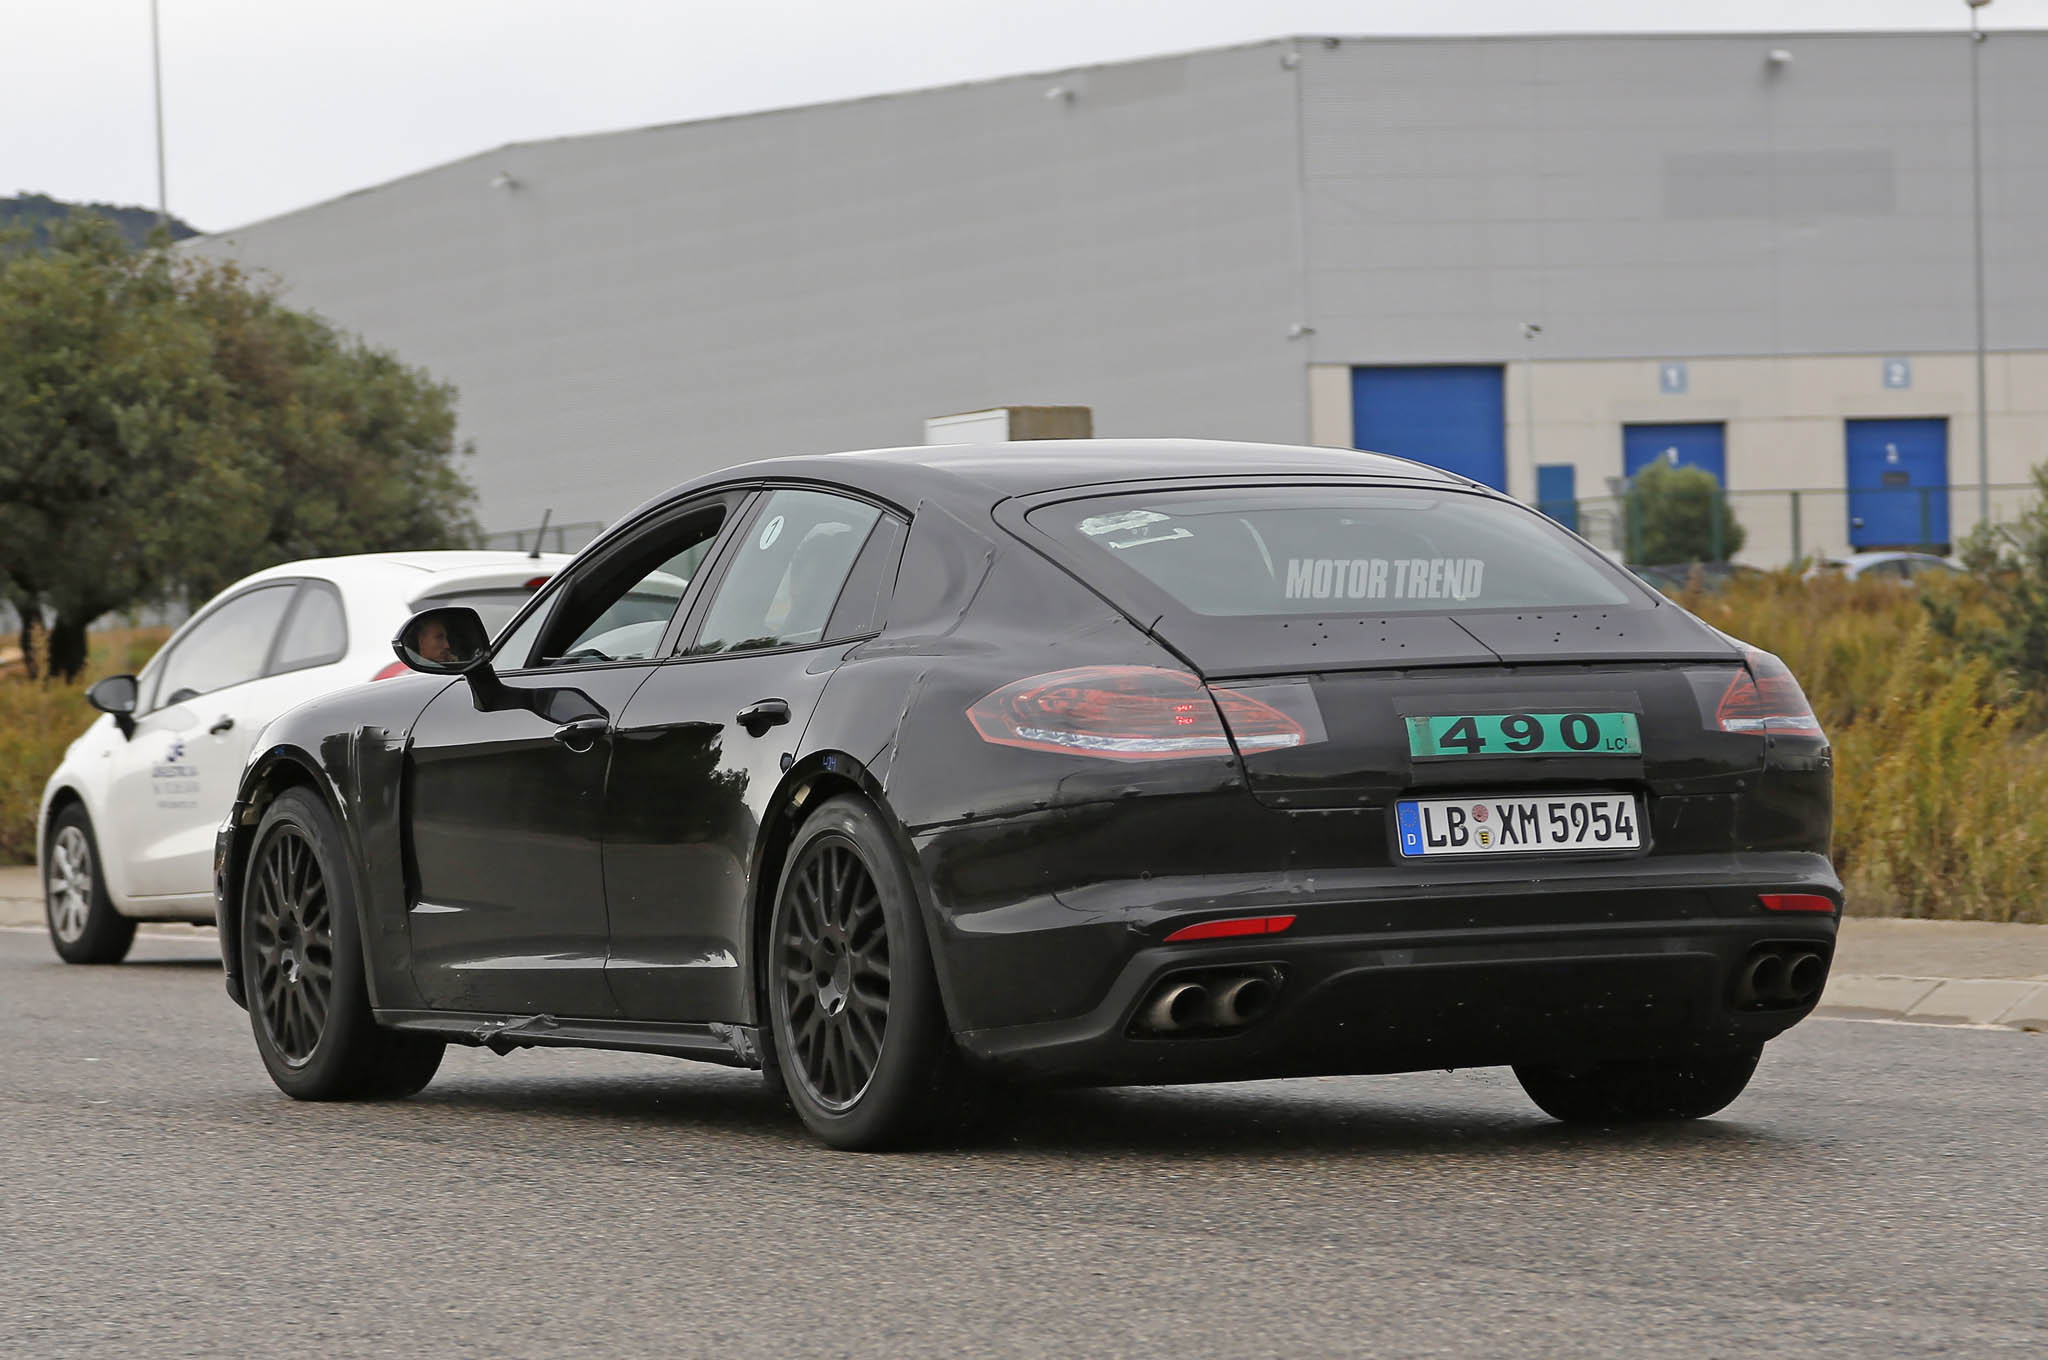 Next Gen Porsche Panamera Rear View